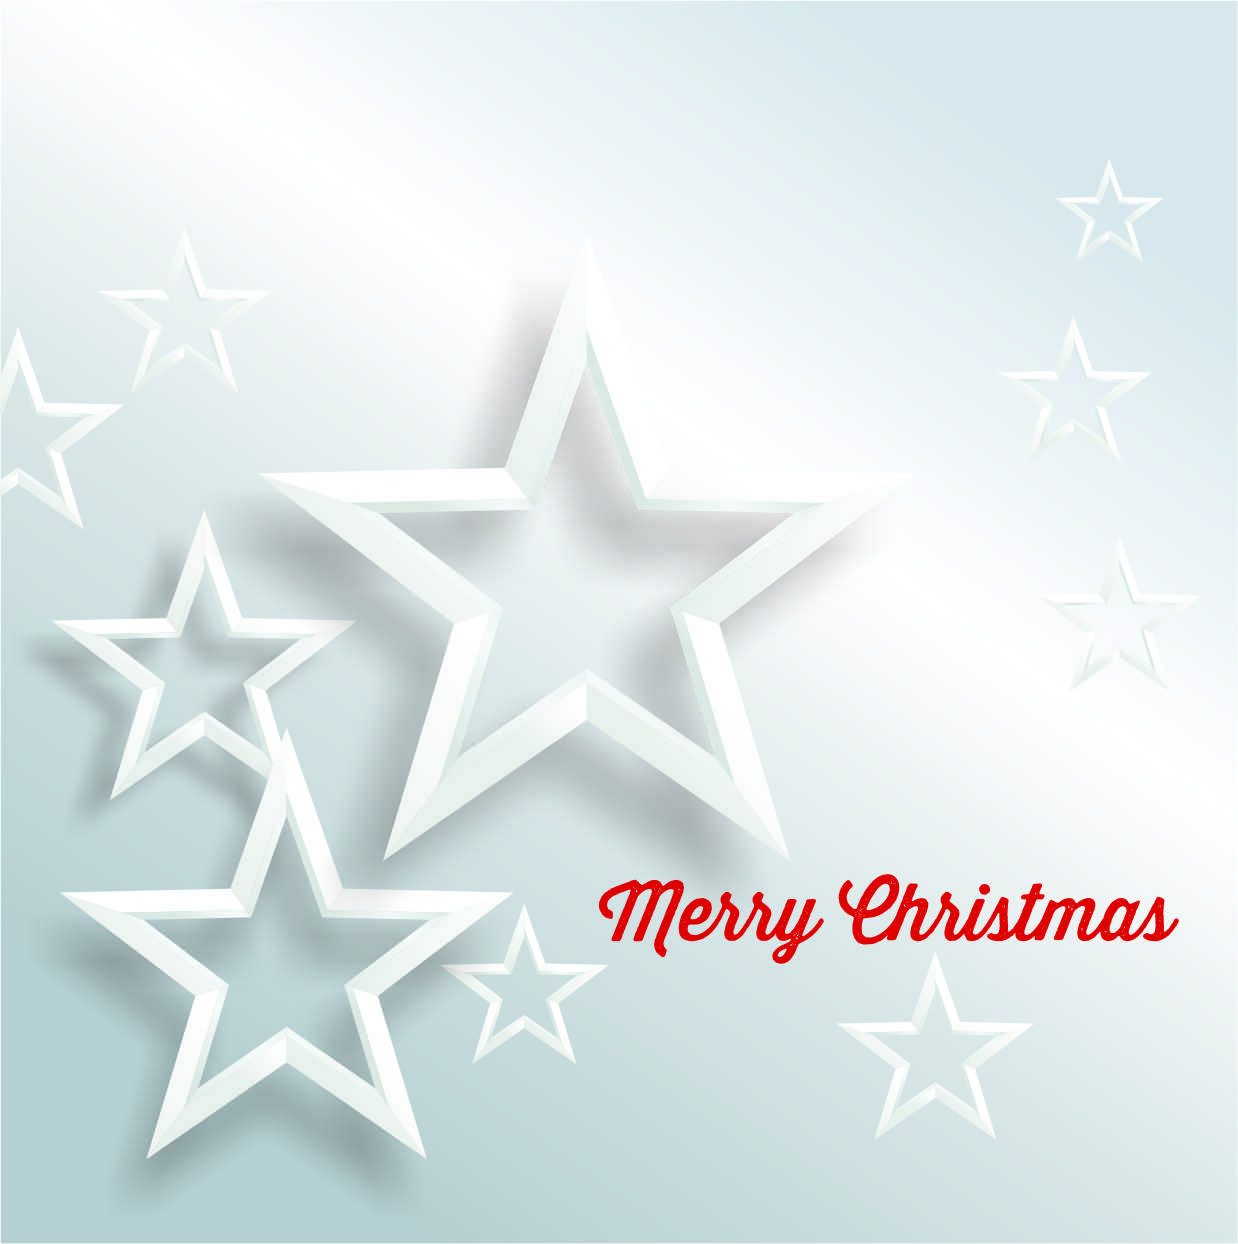 Merry Christmas and Happy New Year from all of us at Hunter Galvanizing